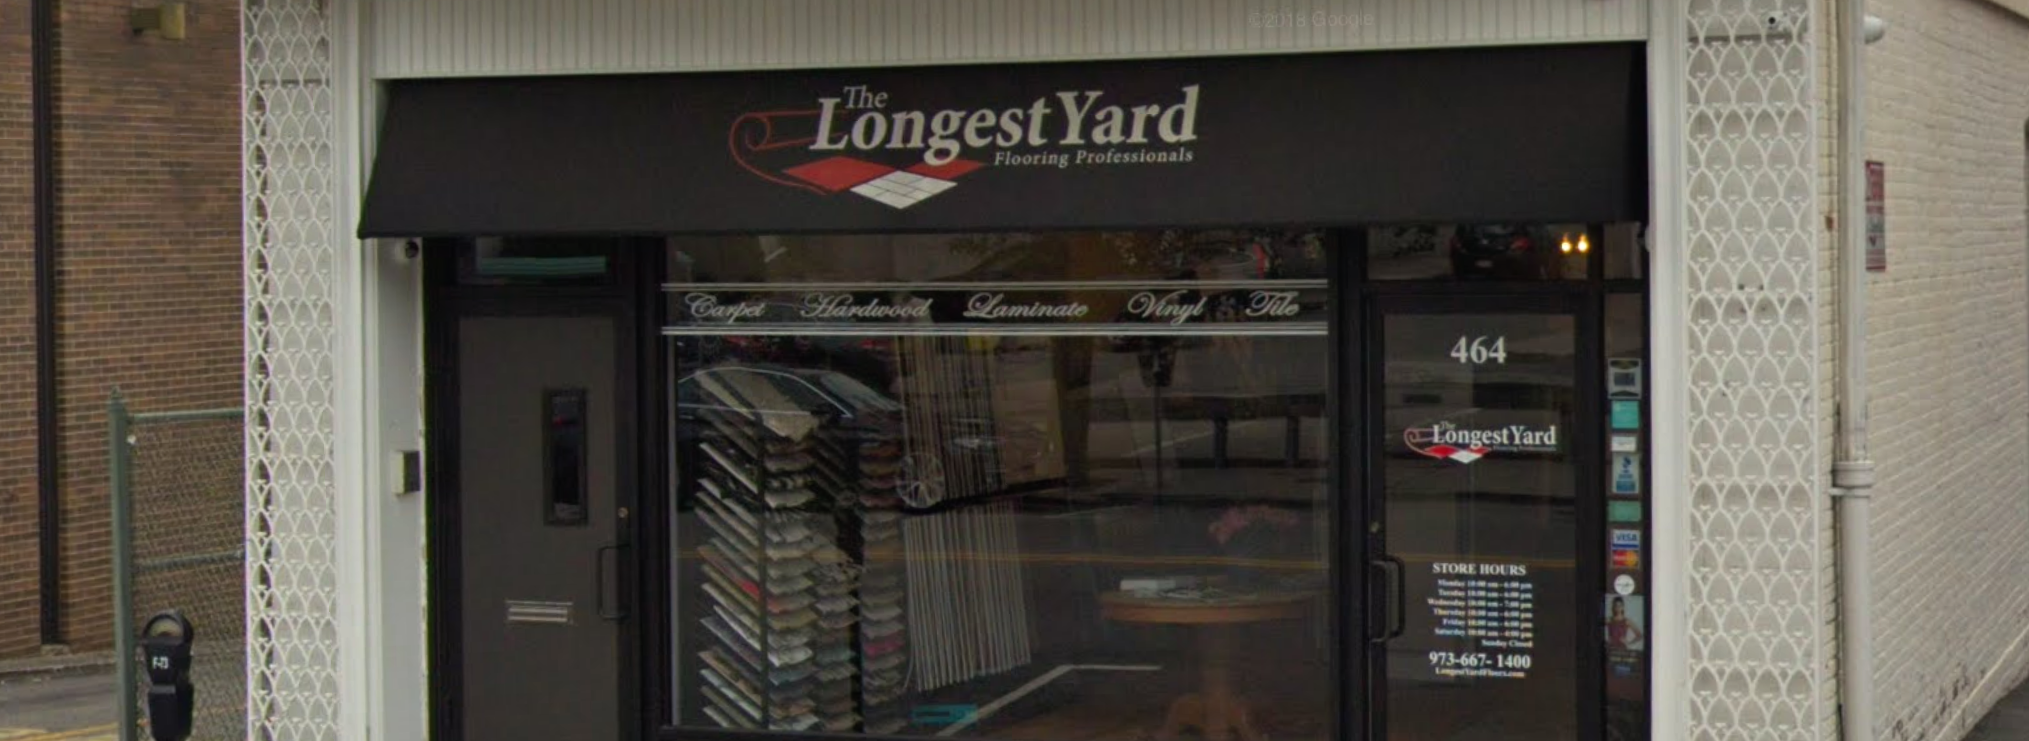 The Longest Yard - 464 Franklin Ave, Nutley, NJ 07110